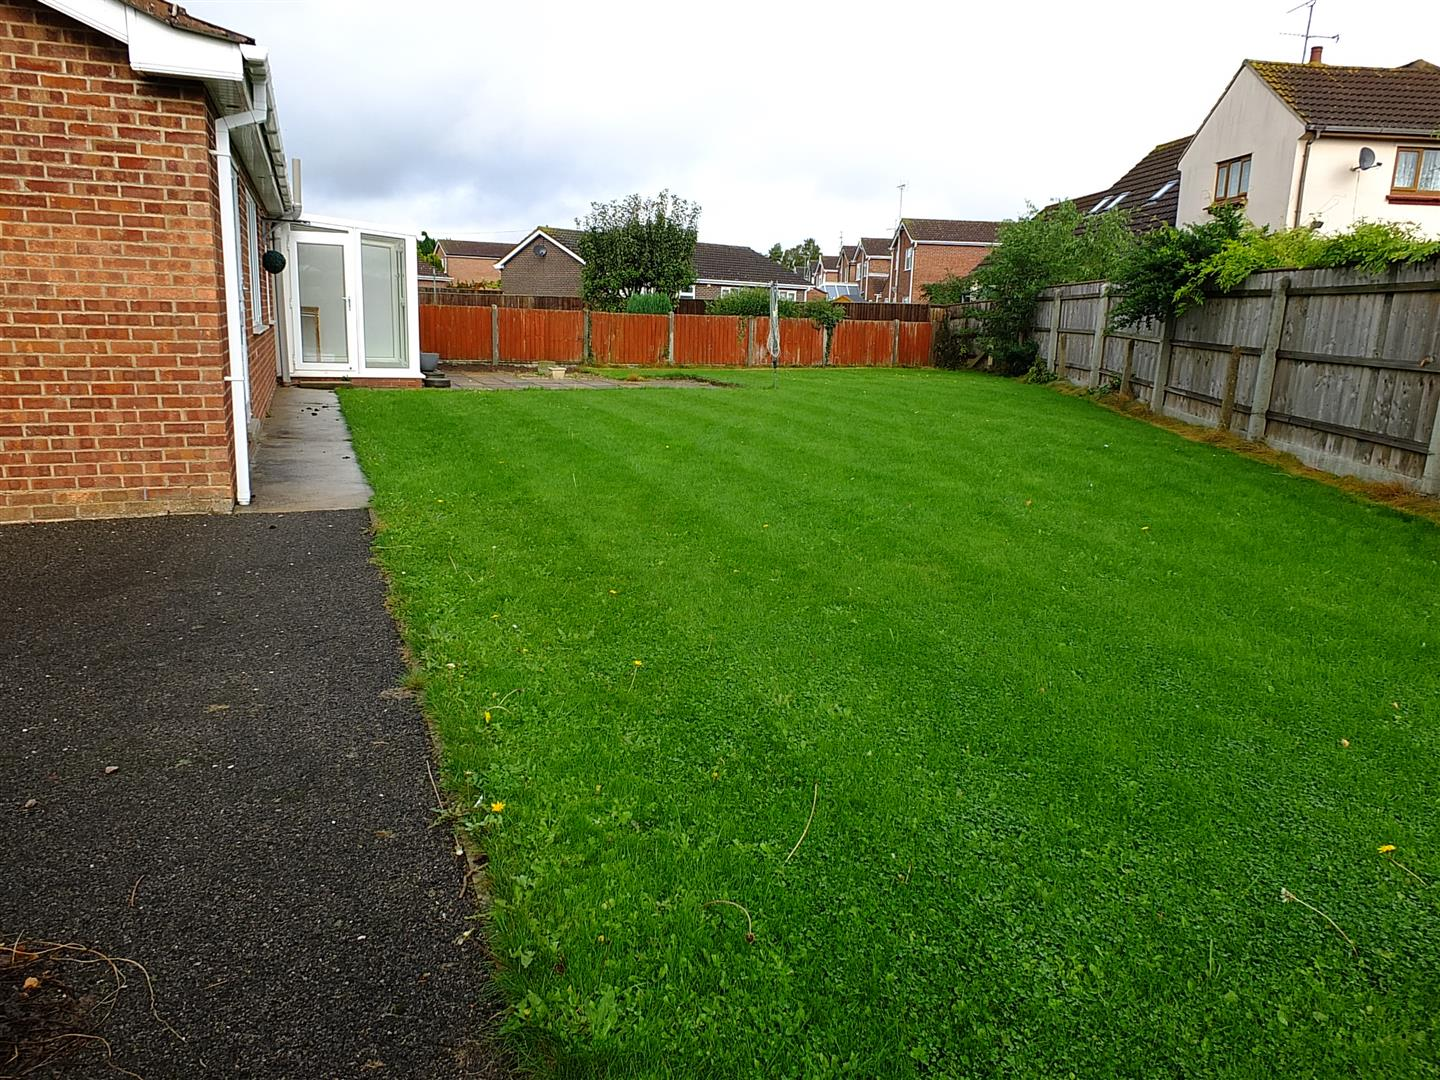 3 bed detached bungalow to rent in Long Sutton Spalding, PE12 9LY 19